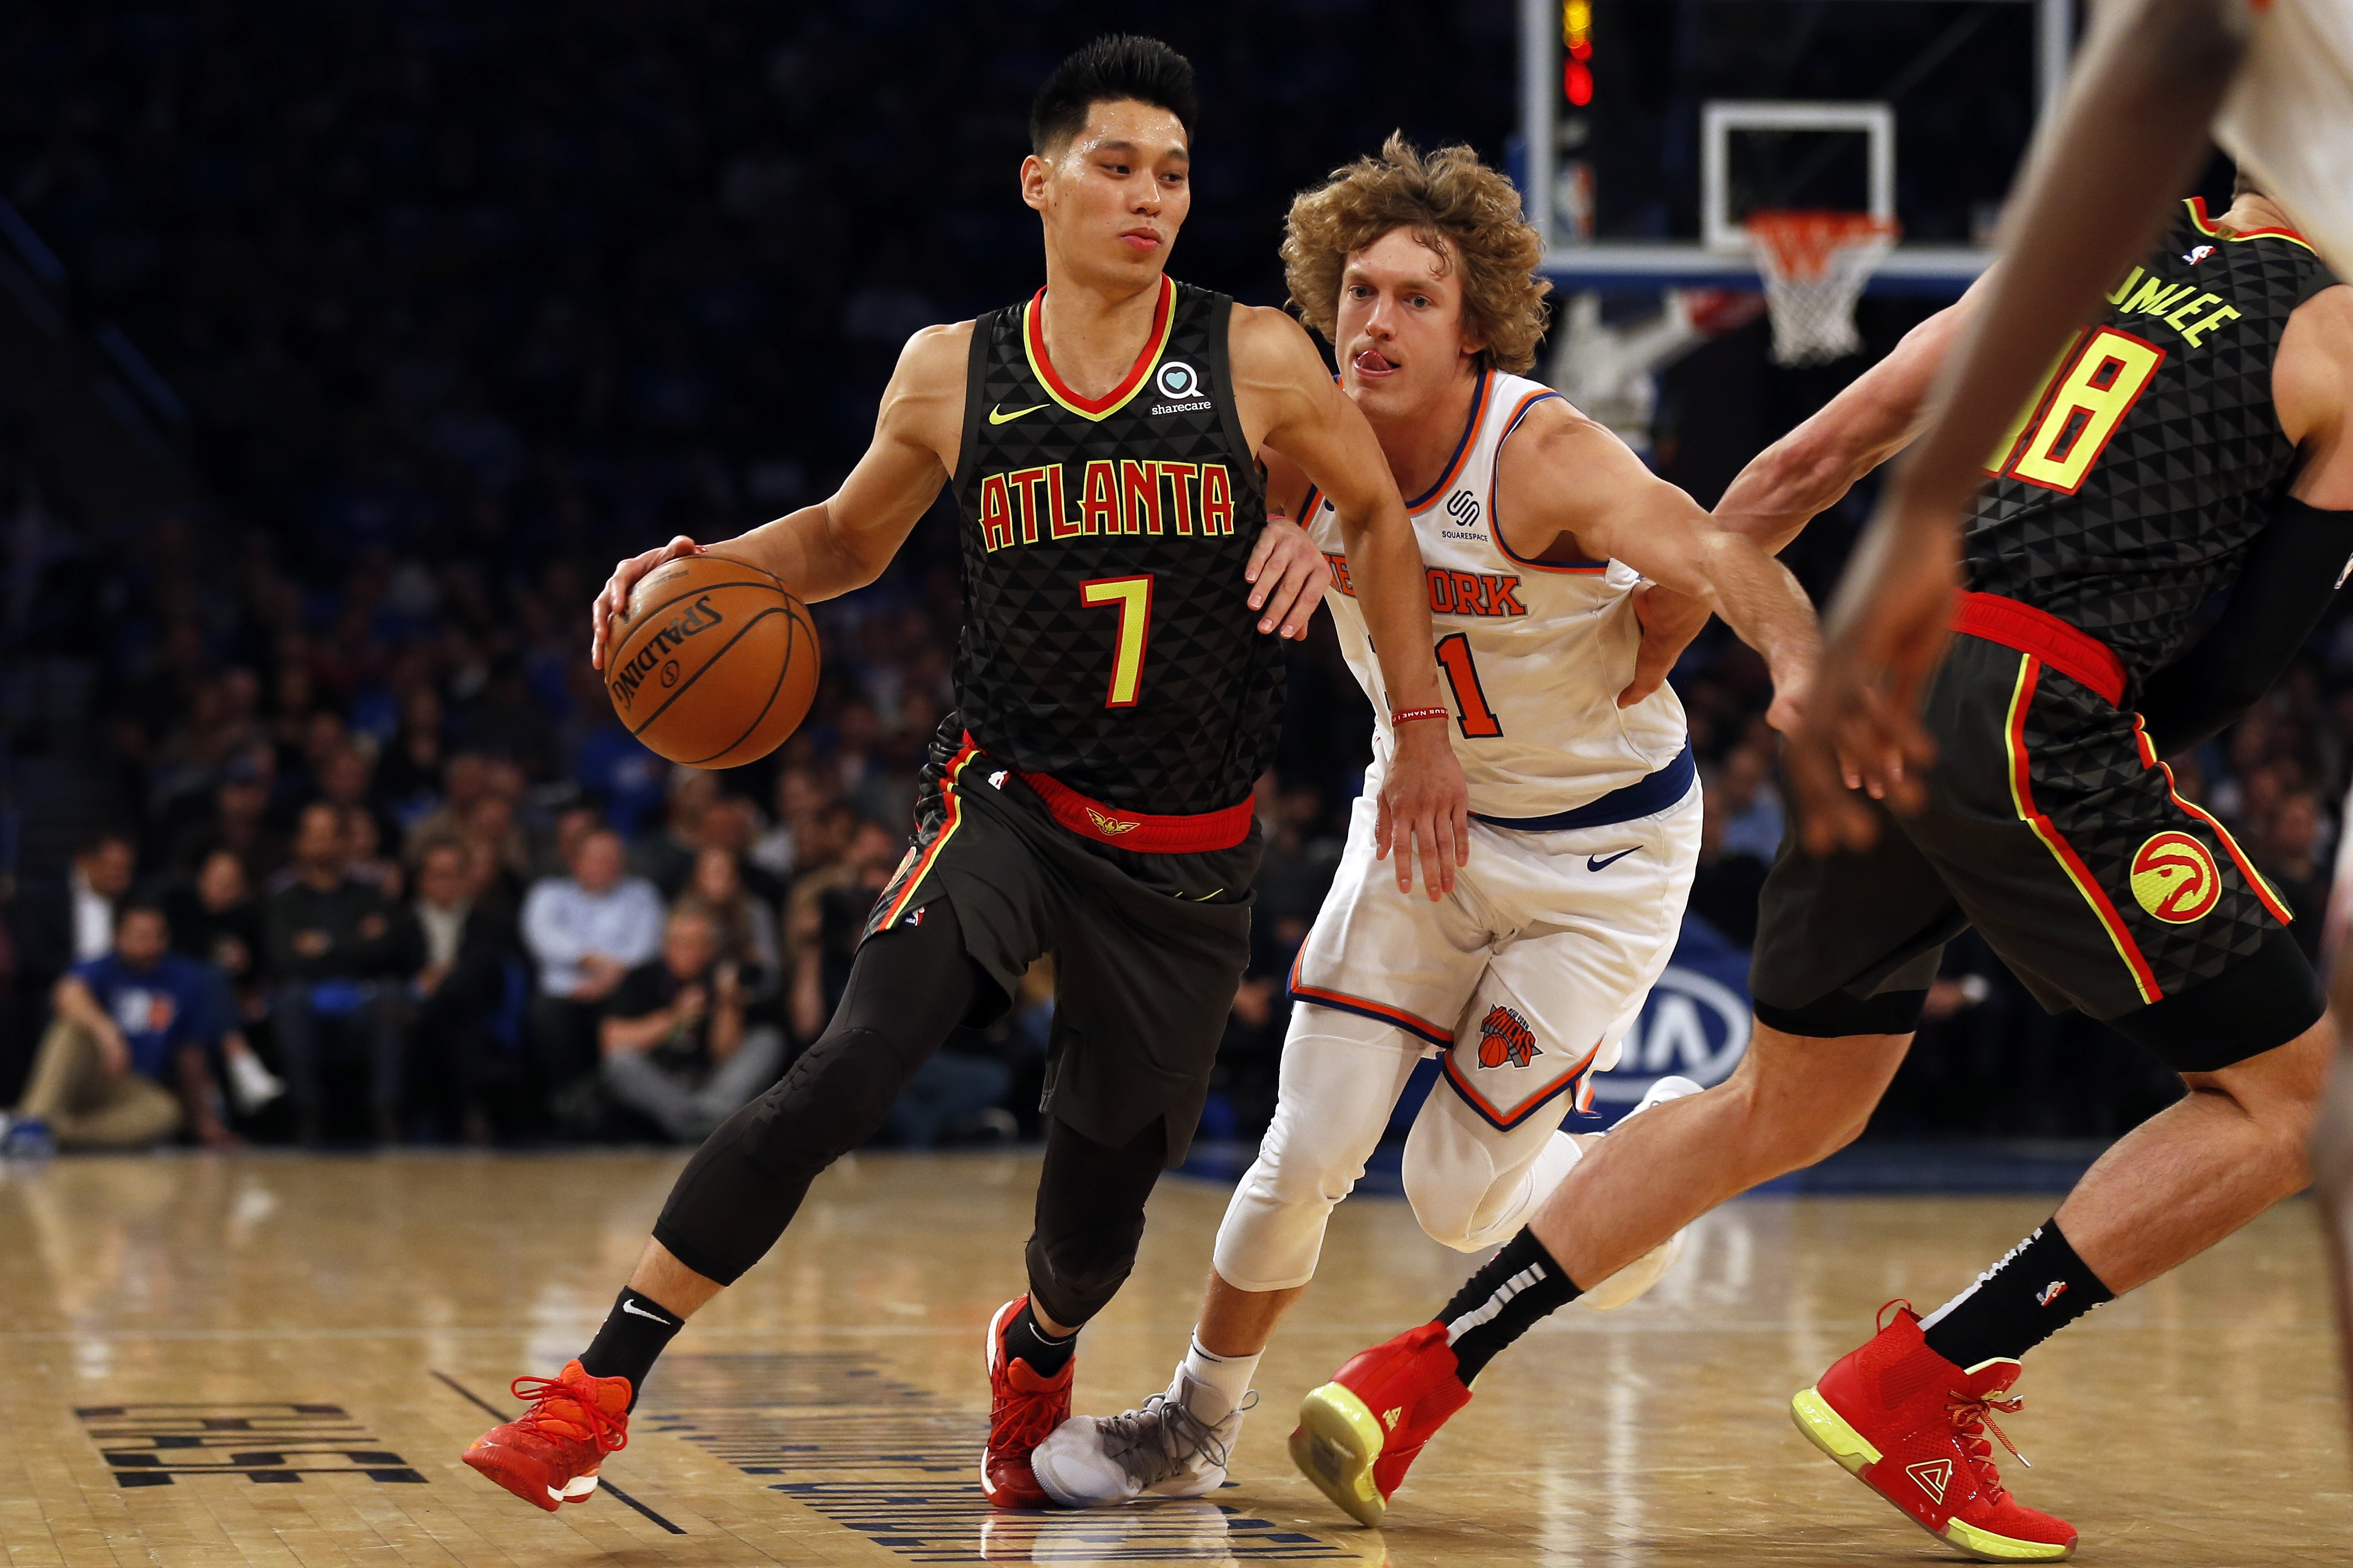 separation shoes 4503f 4426e NBA star Jeremy Lin tells Stephen J Dubner of Freakonomics Radio about  fans, injury frustrations and the future   South China Morning Post